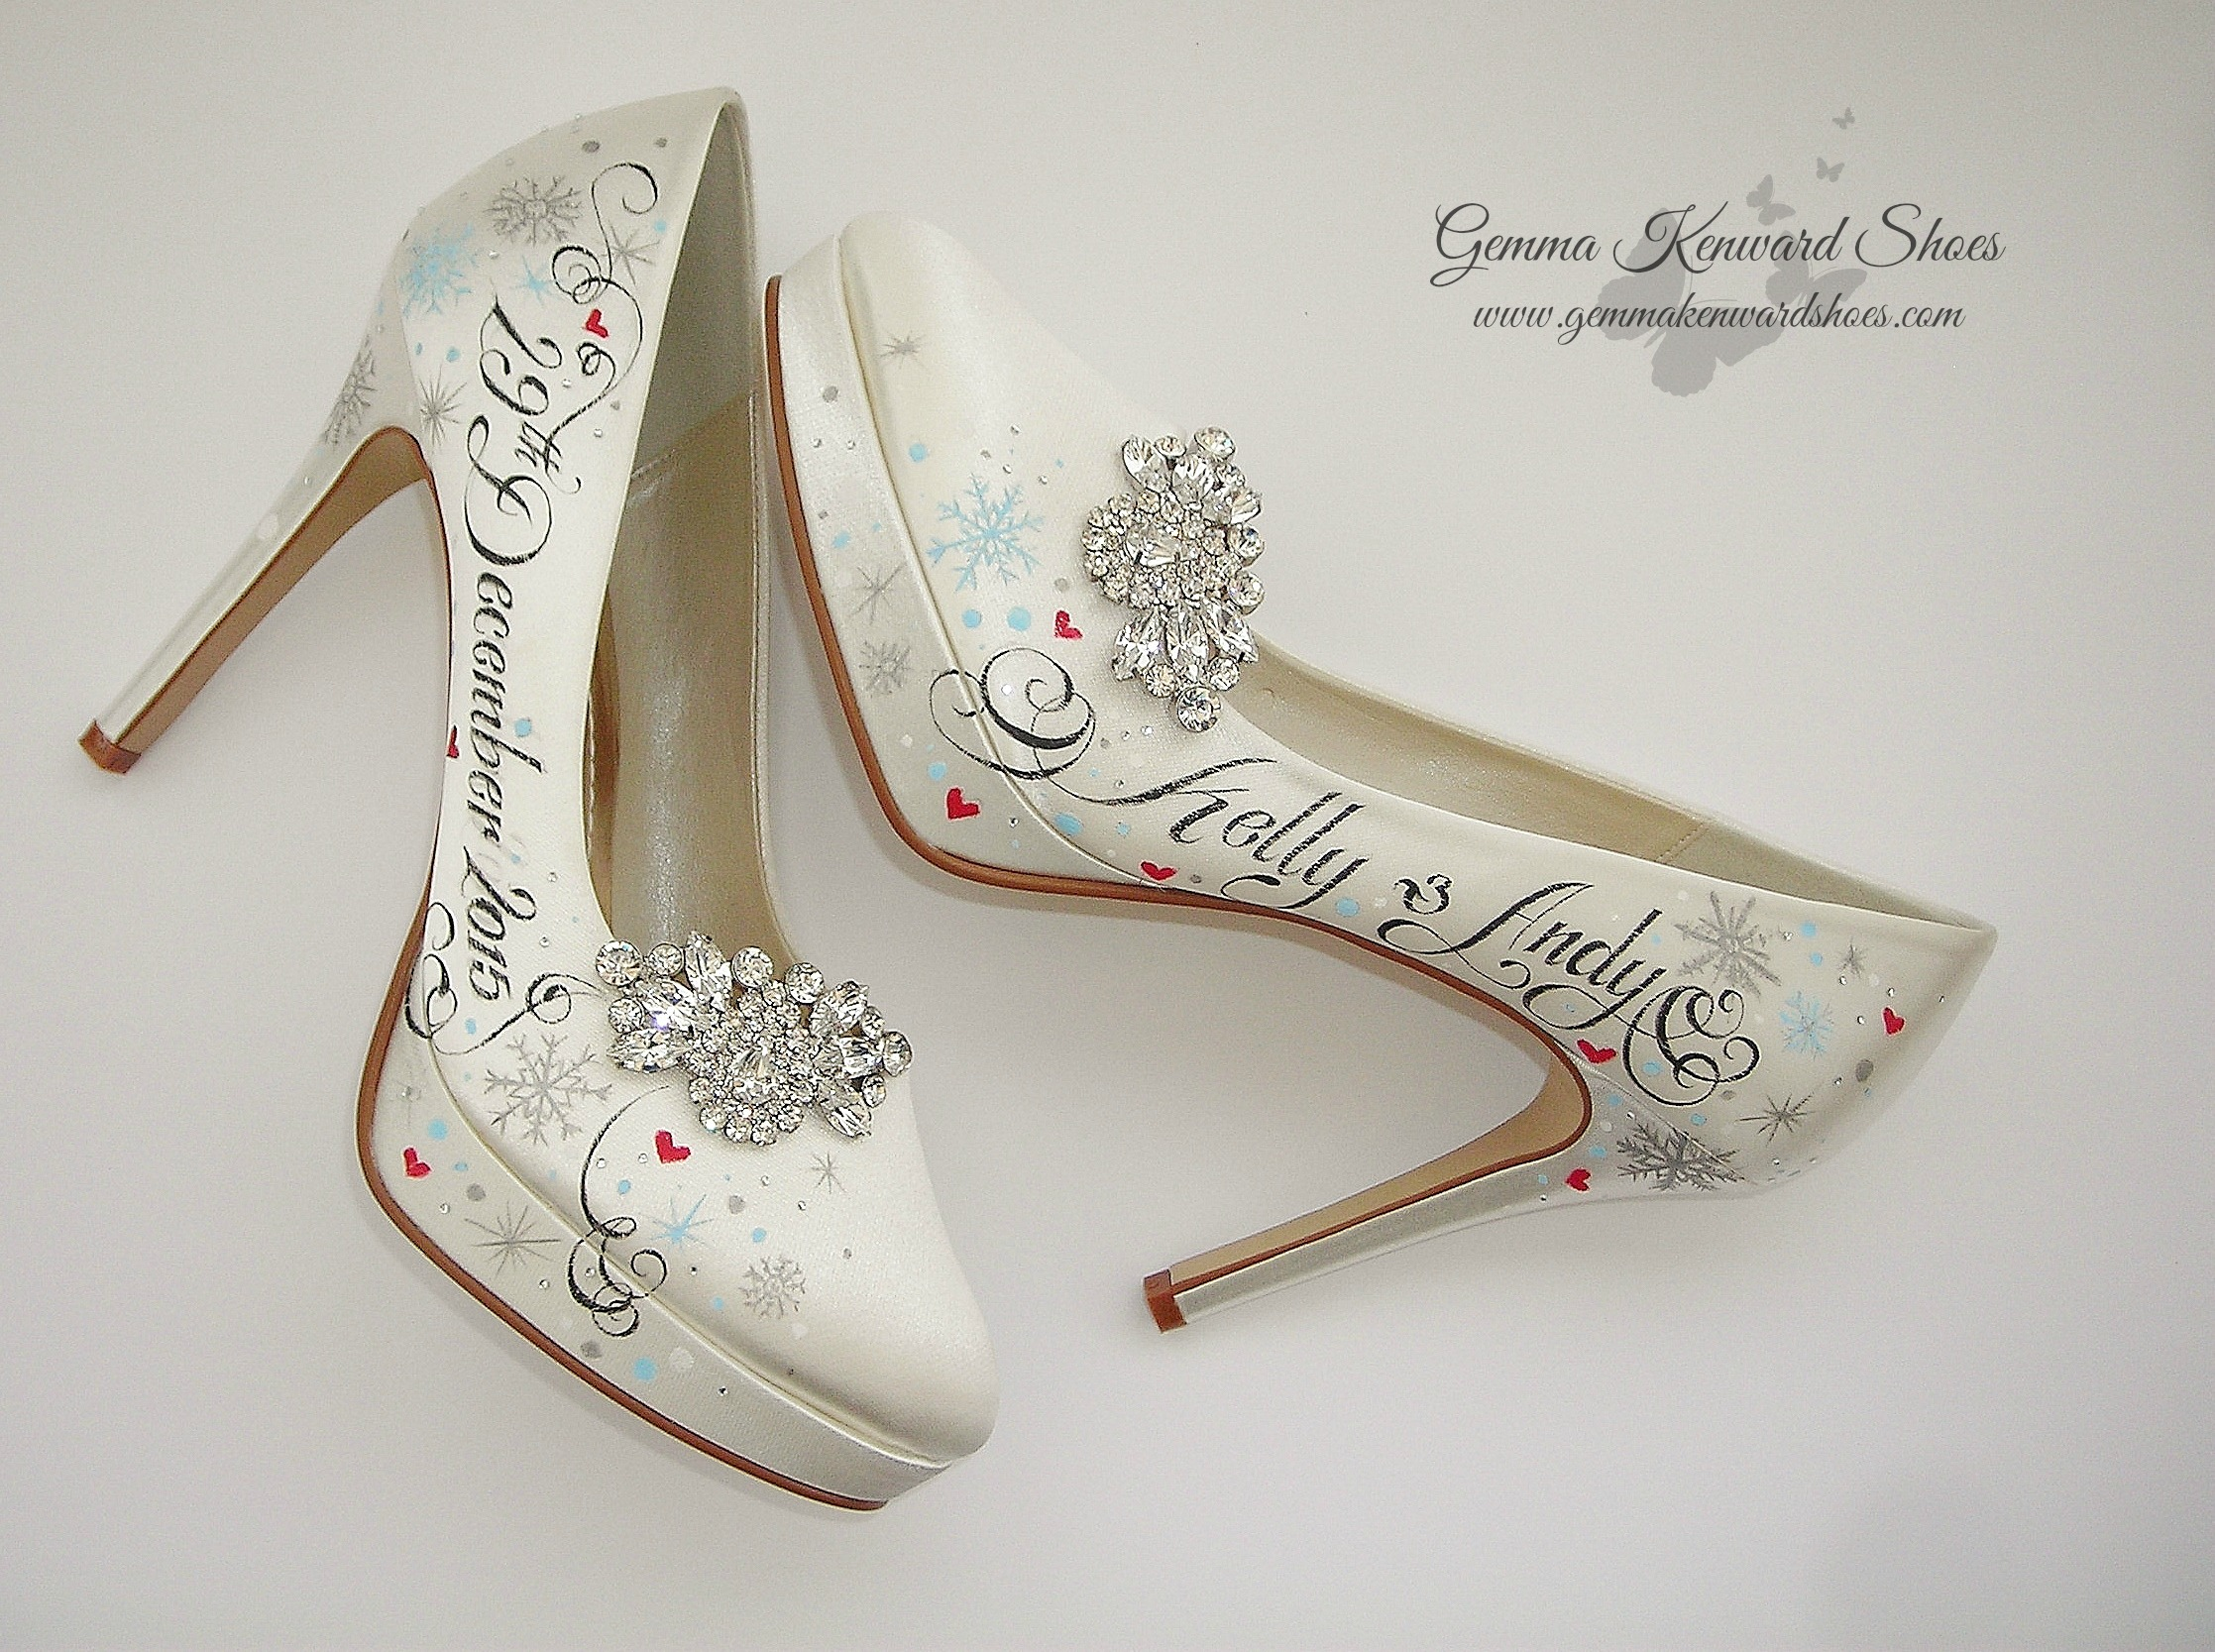 Costum hand painted bridal shoes, hand painted uniques, high heels,